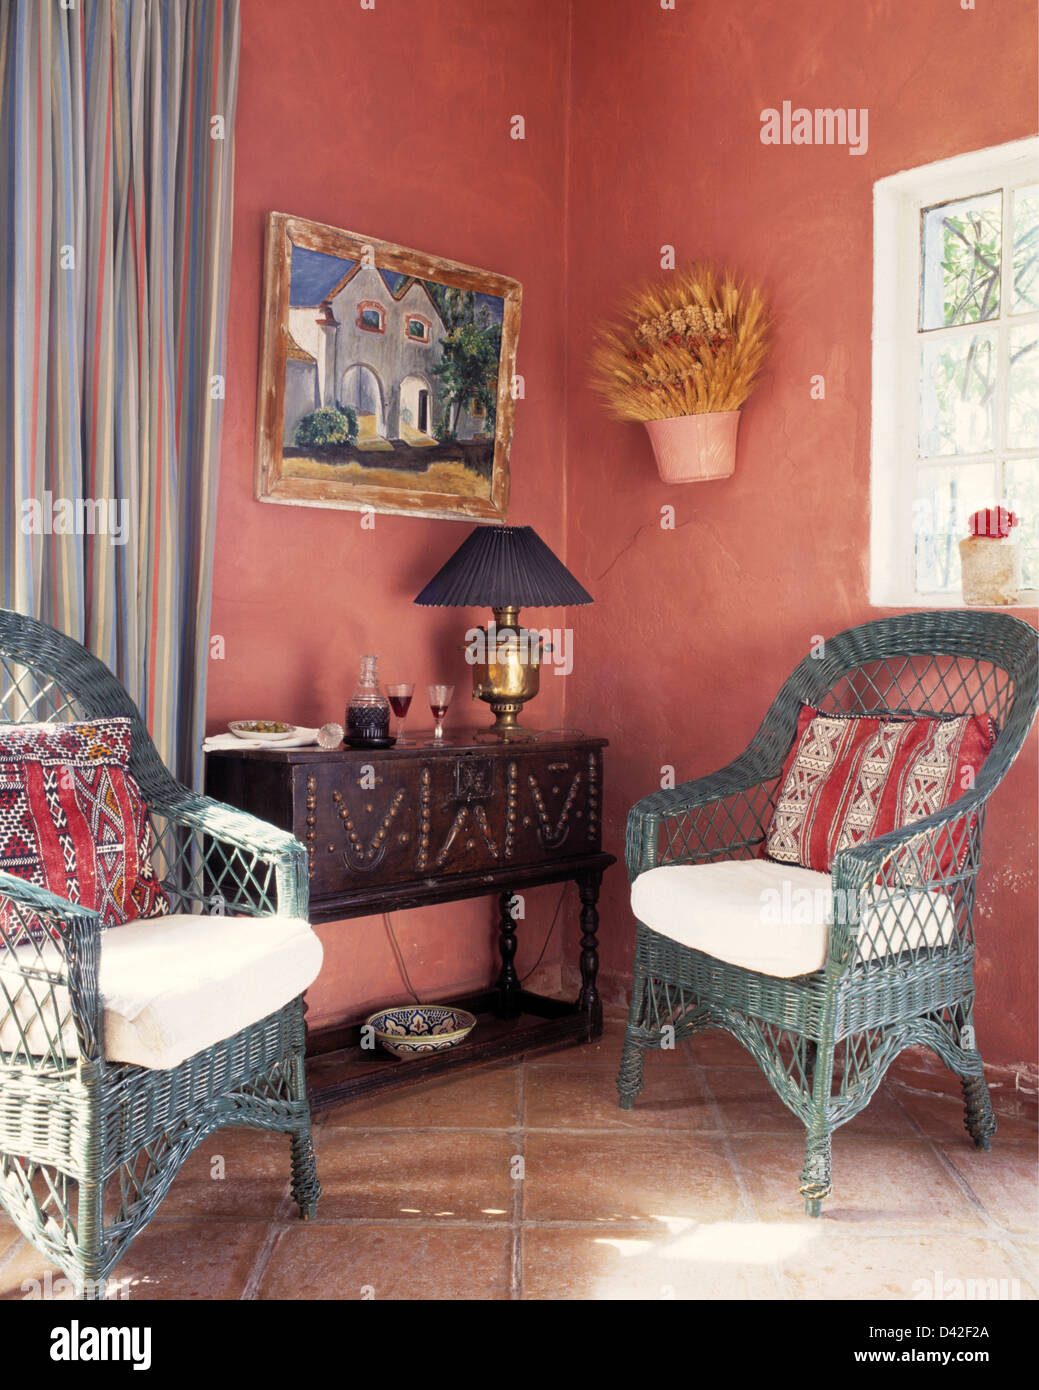 Cane chairs with cushions - Grey Blue Cane Chairs With Colorful Cushions In Pink Spanish Country Living Room With Carved Wood Console Table